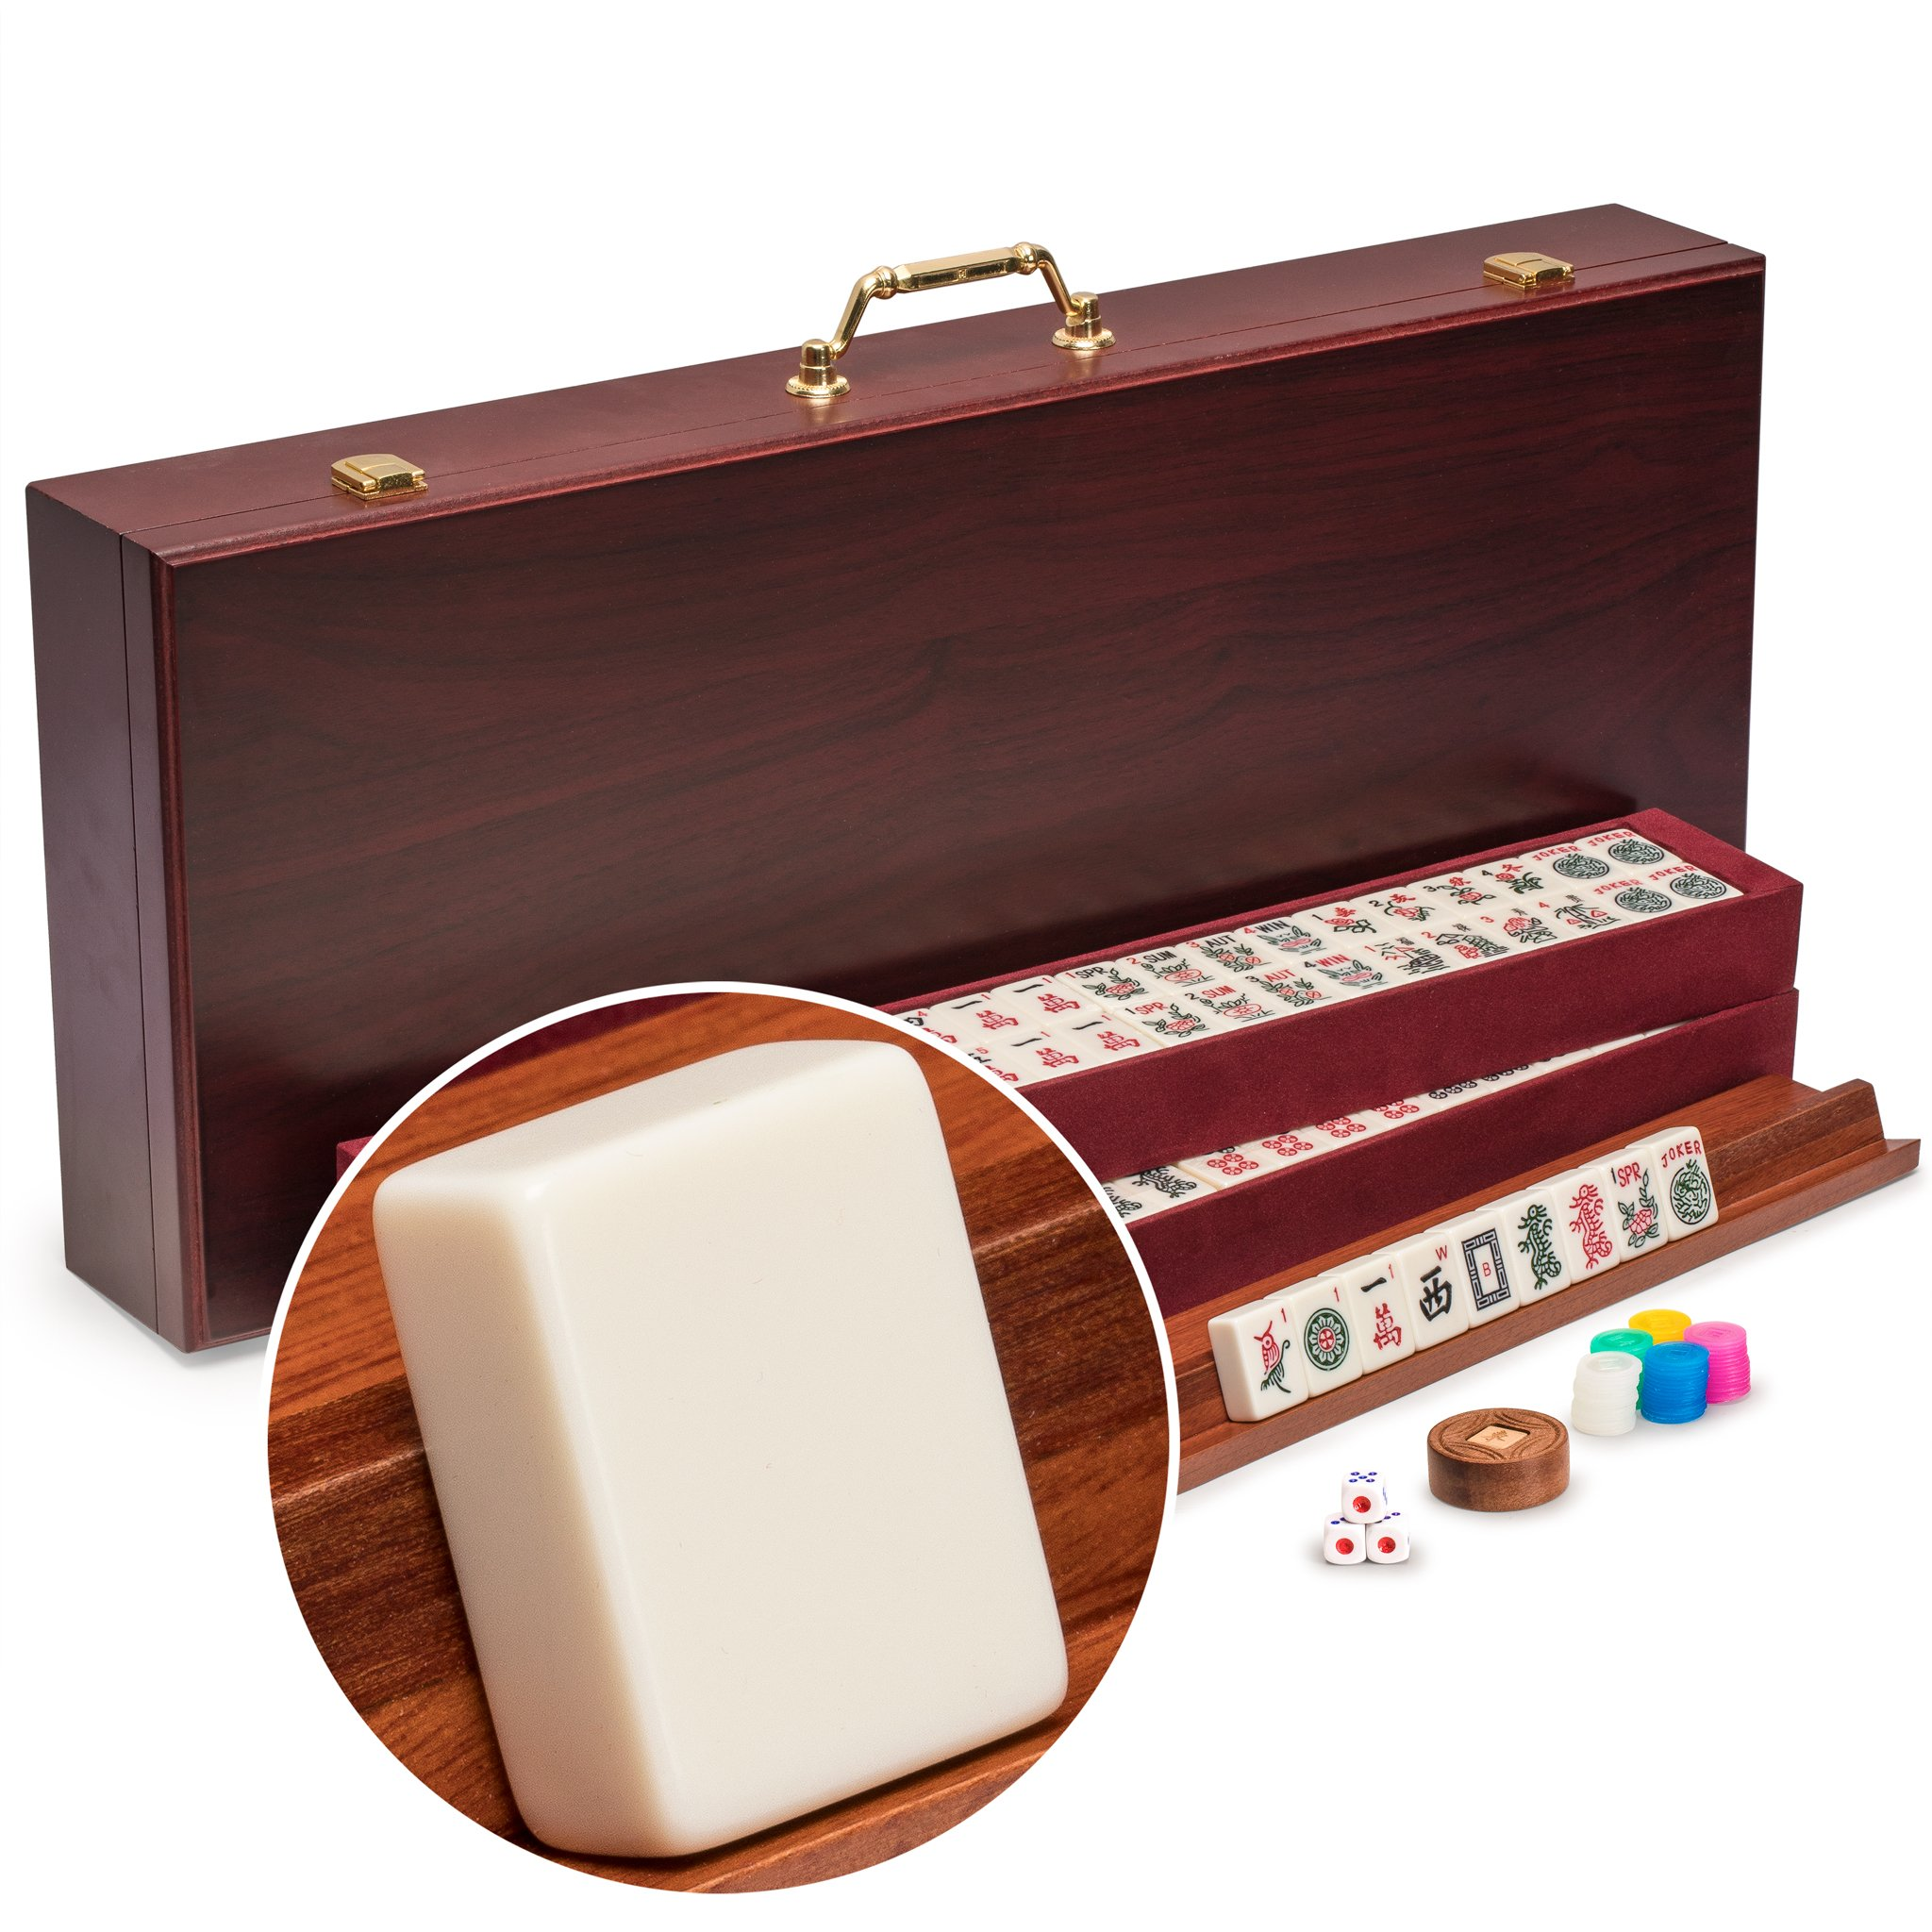 Yellow Mountain Imports American Mahjong (Mah Jong, Mahjongg, Mah-Jongg, Mah Jongg) Set with 166 Tiles, Racks, and Accessories, The Classic